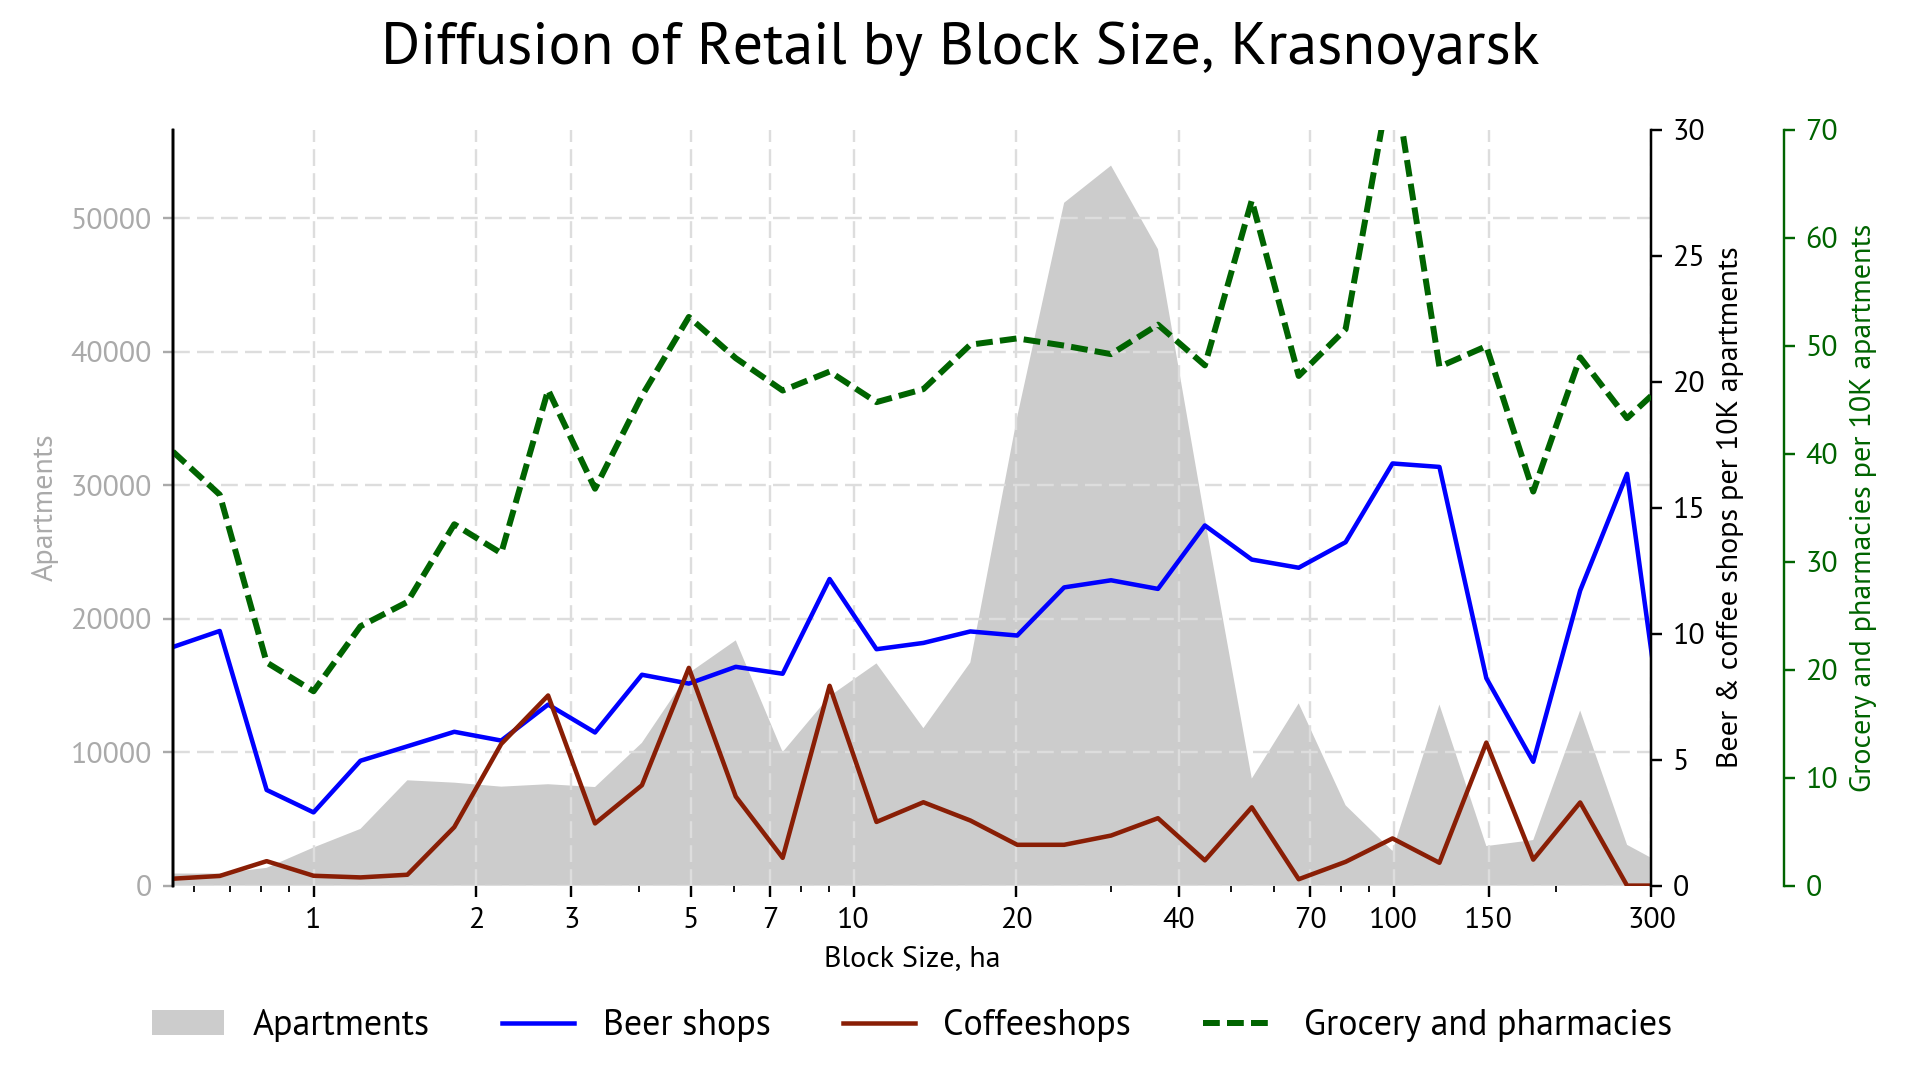 Diffusion of retail depending on block area. Krasnoyarsk